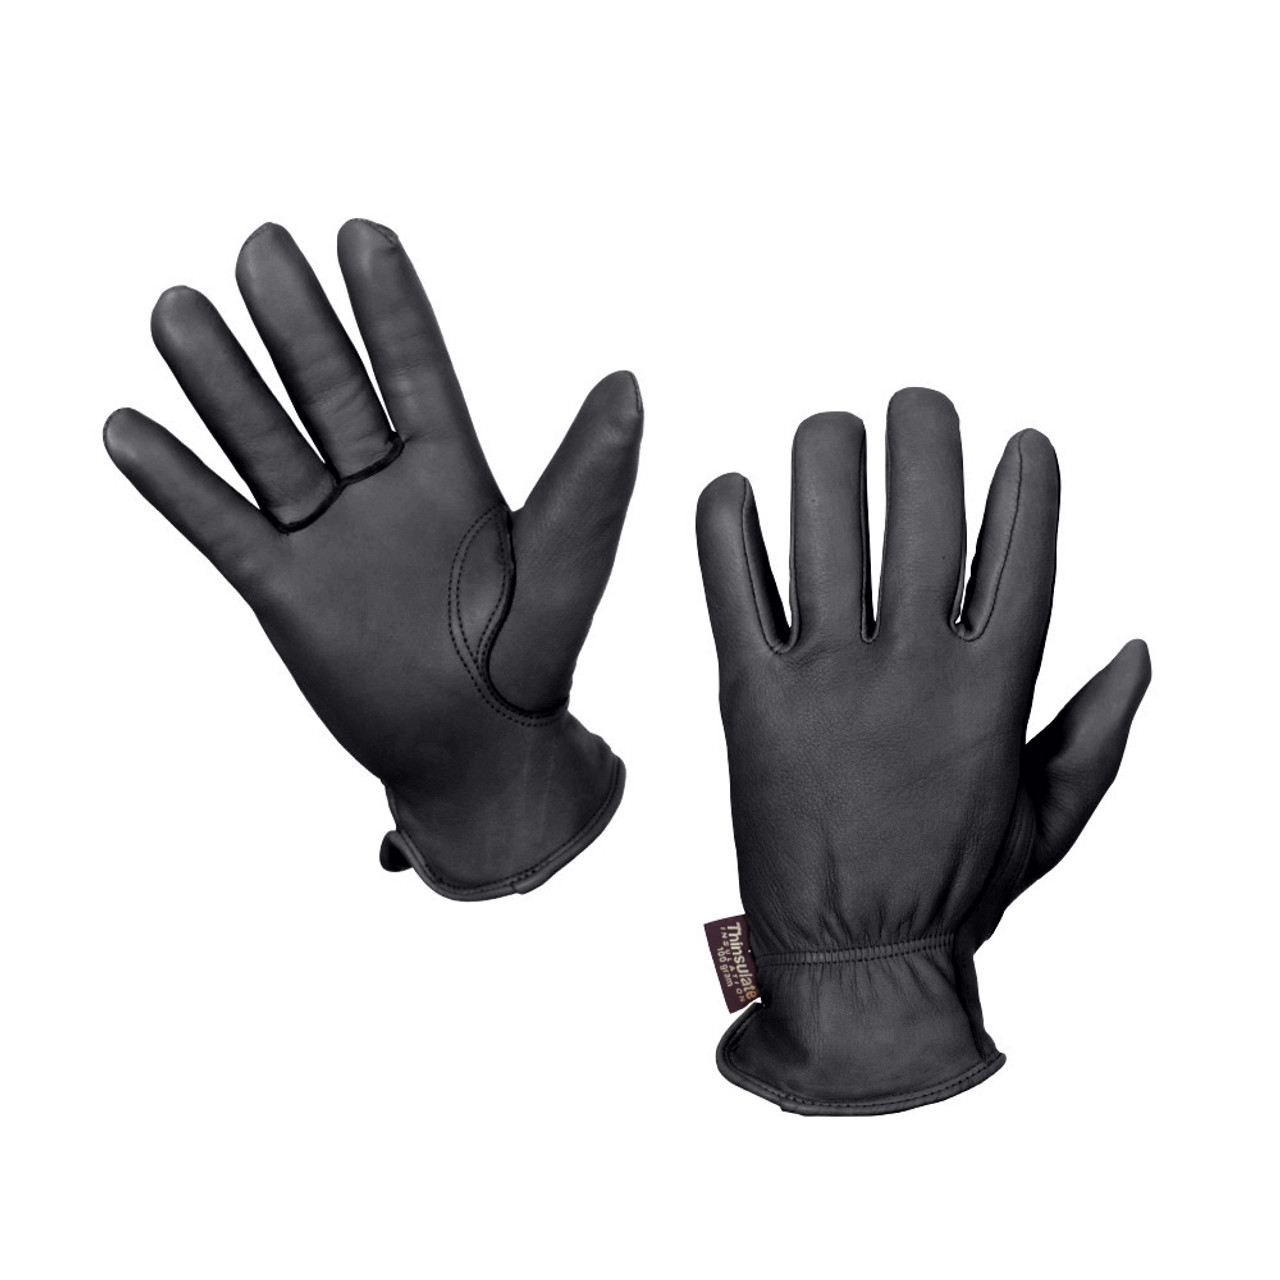 tough duck thinsulate lined deerskin glove 2 pack hero outdoors